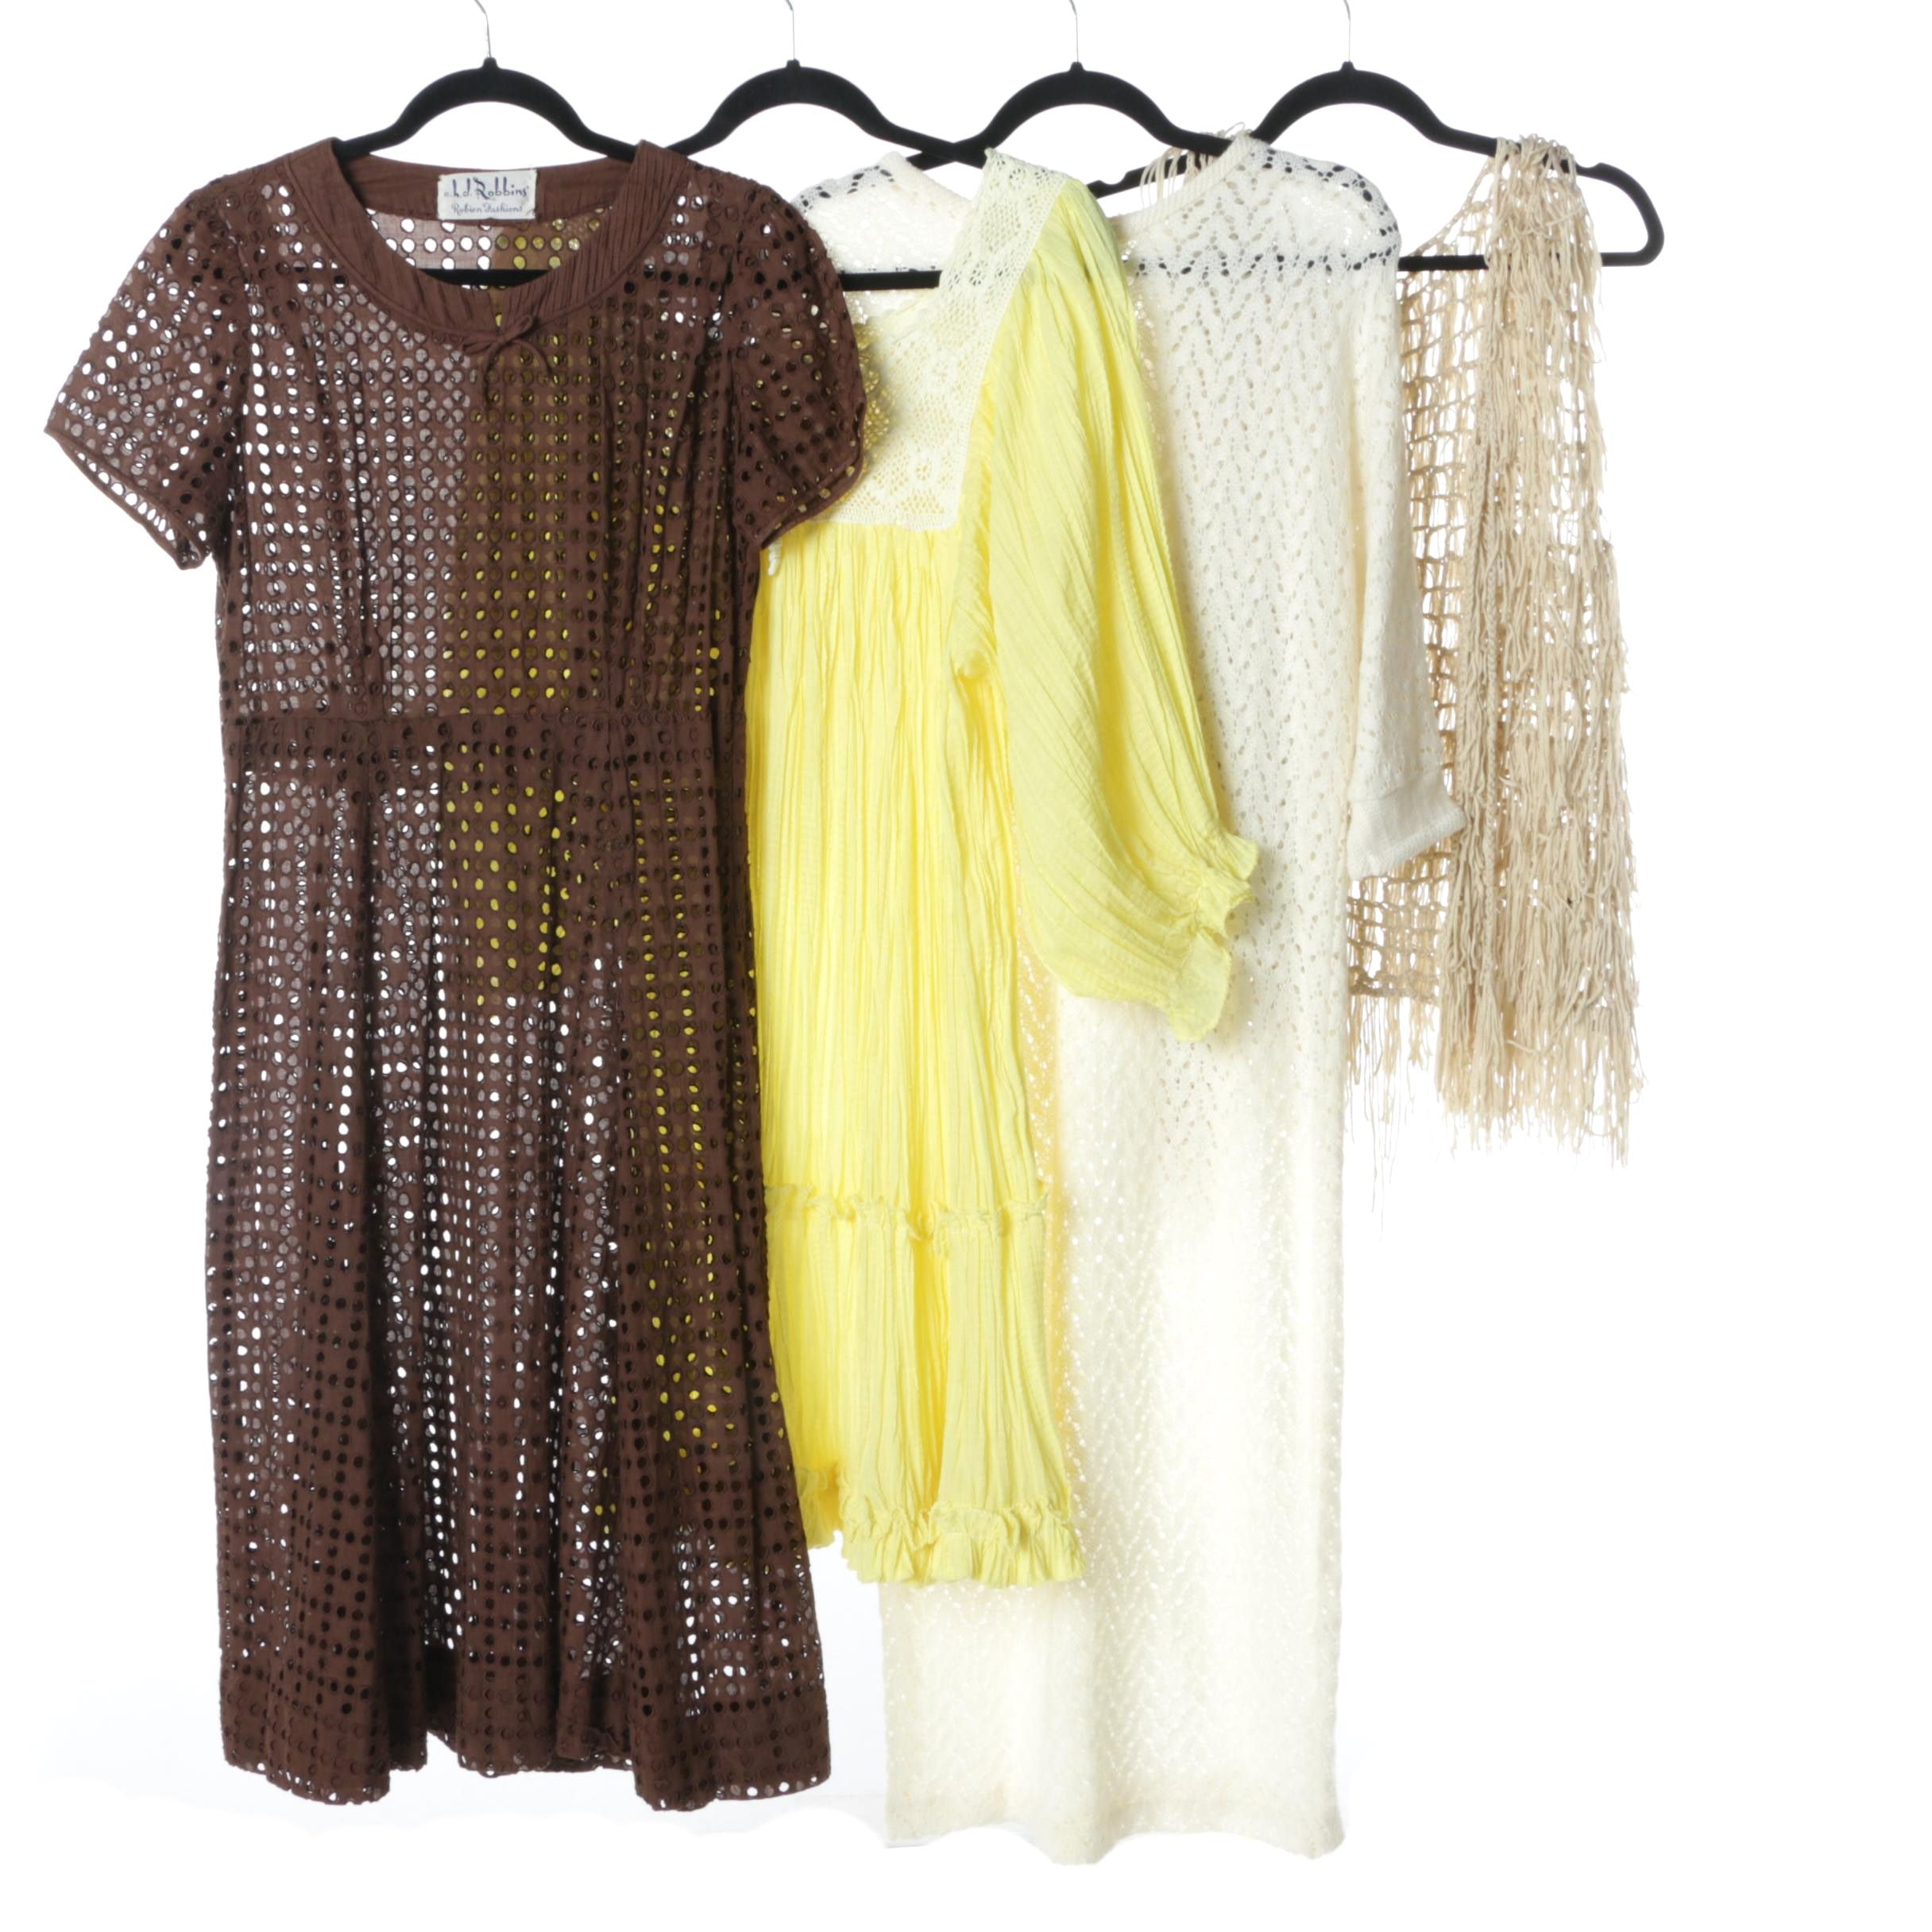 Collection of Vintage Lace, Crochet Dresses and Shawls Including Neiman Marcus